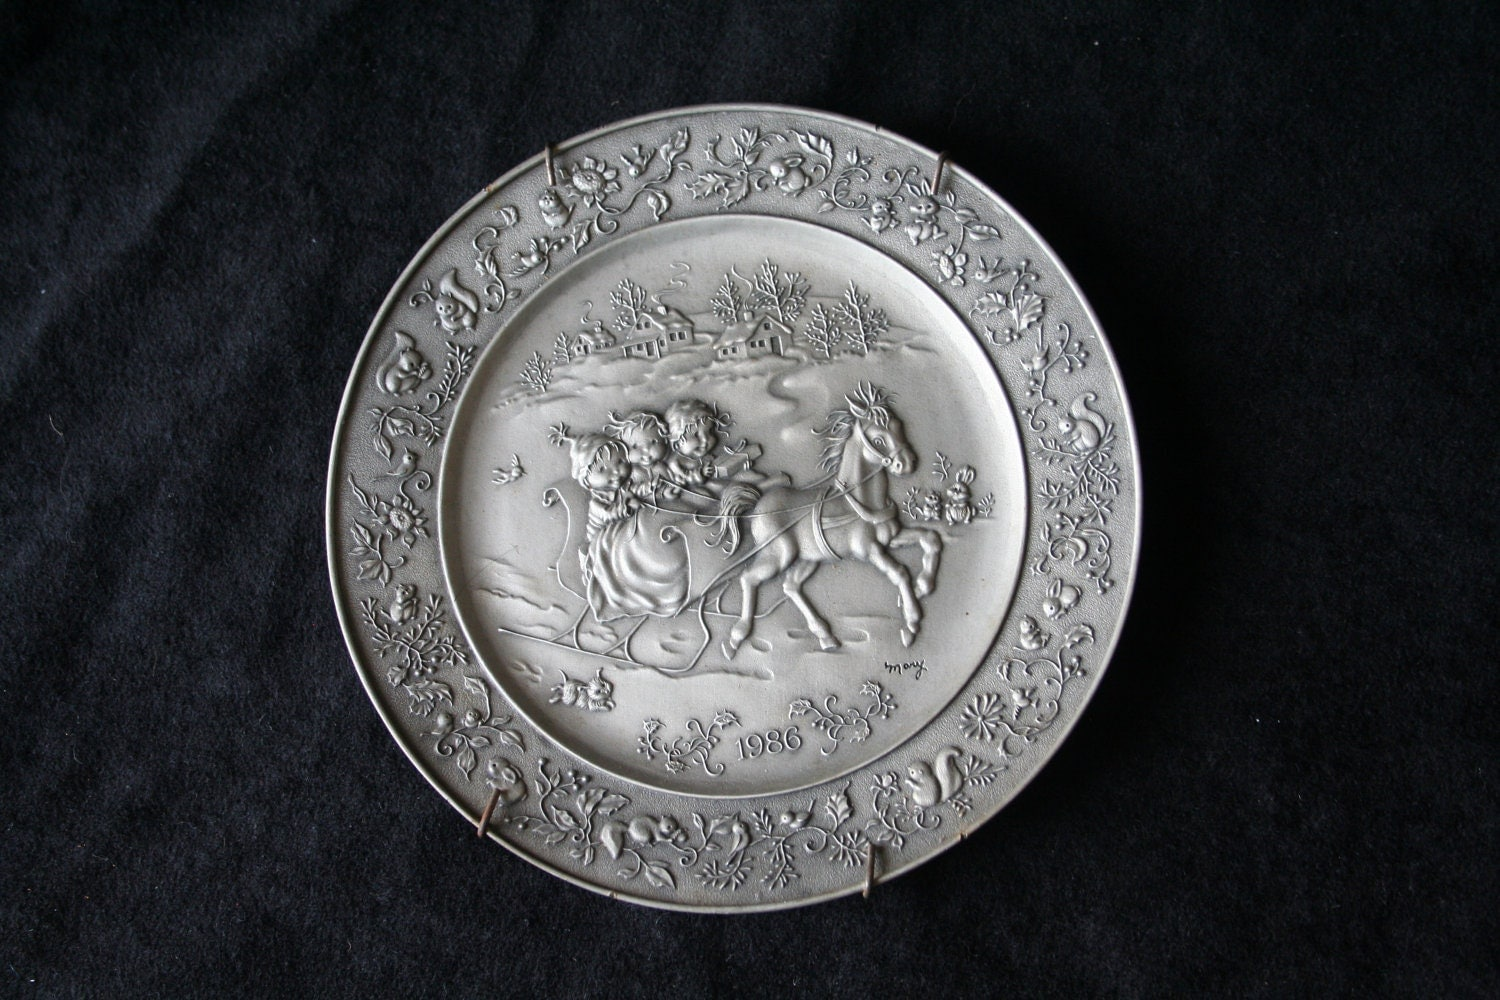 Pewter Plate Hallmark Chart England: Pewter Collectors Plate Hallmark 1986 Christmas By